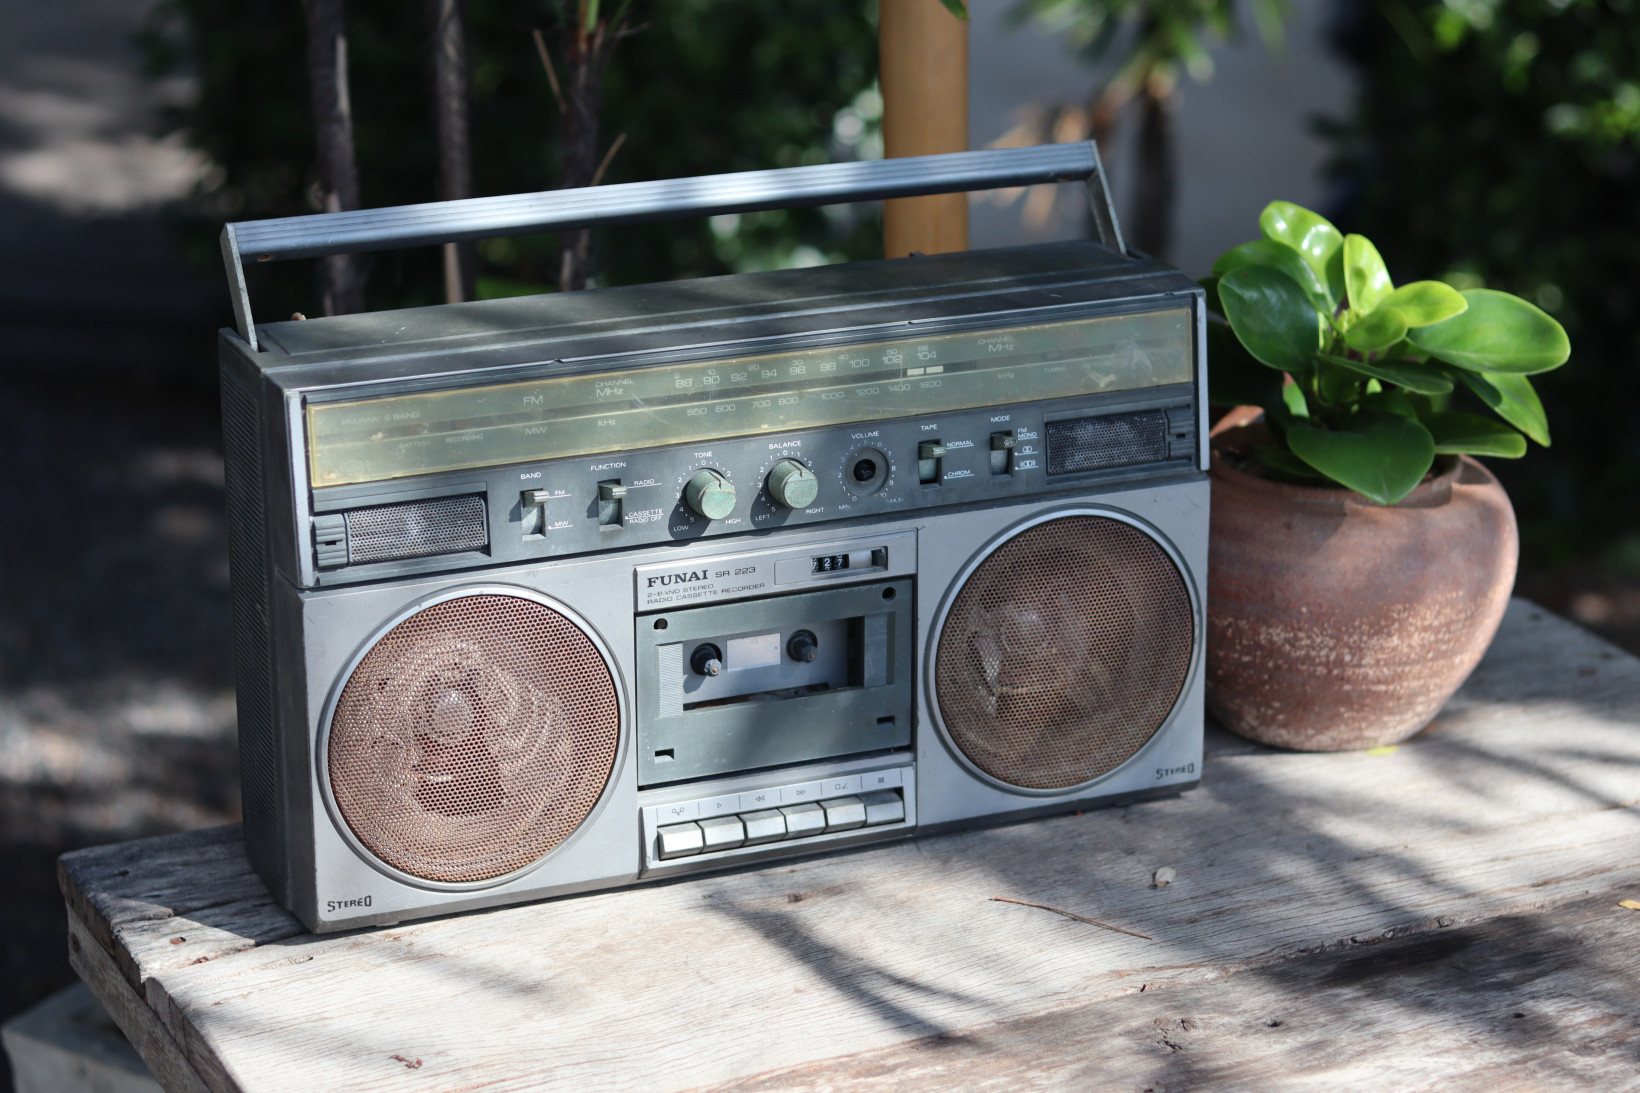 The boombox may now appear fashionably retro – but that won't stop it chewing up the occasional tape.